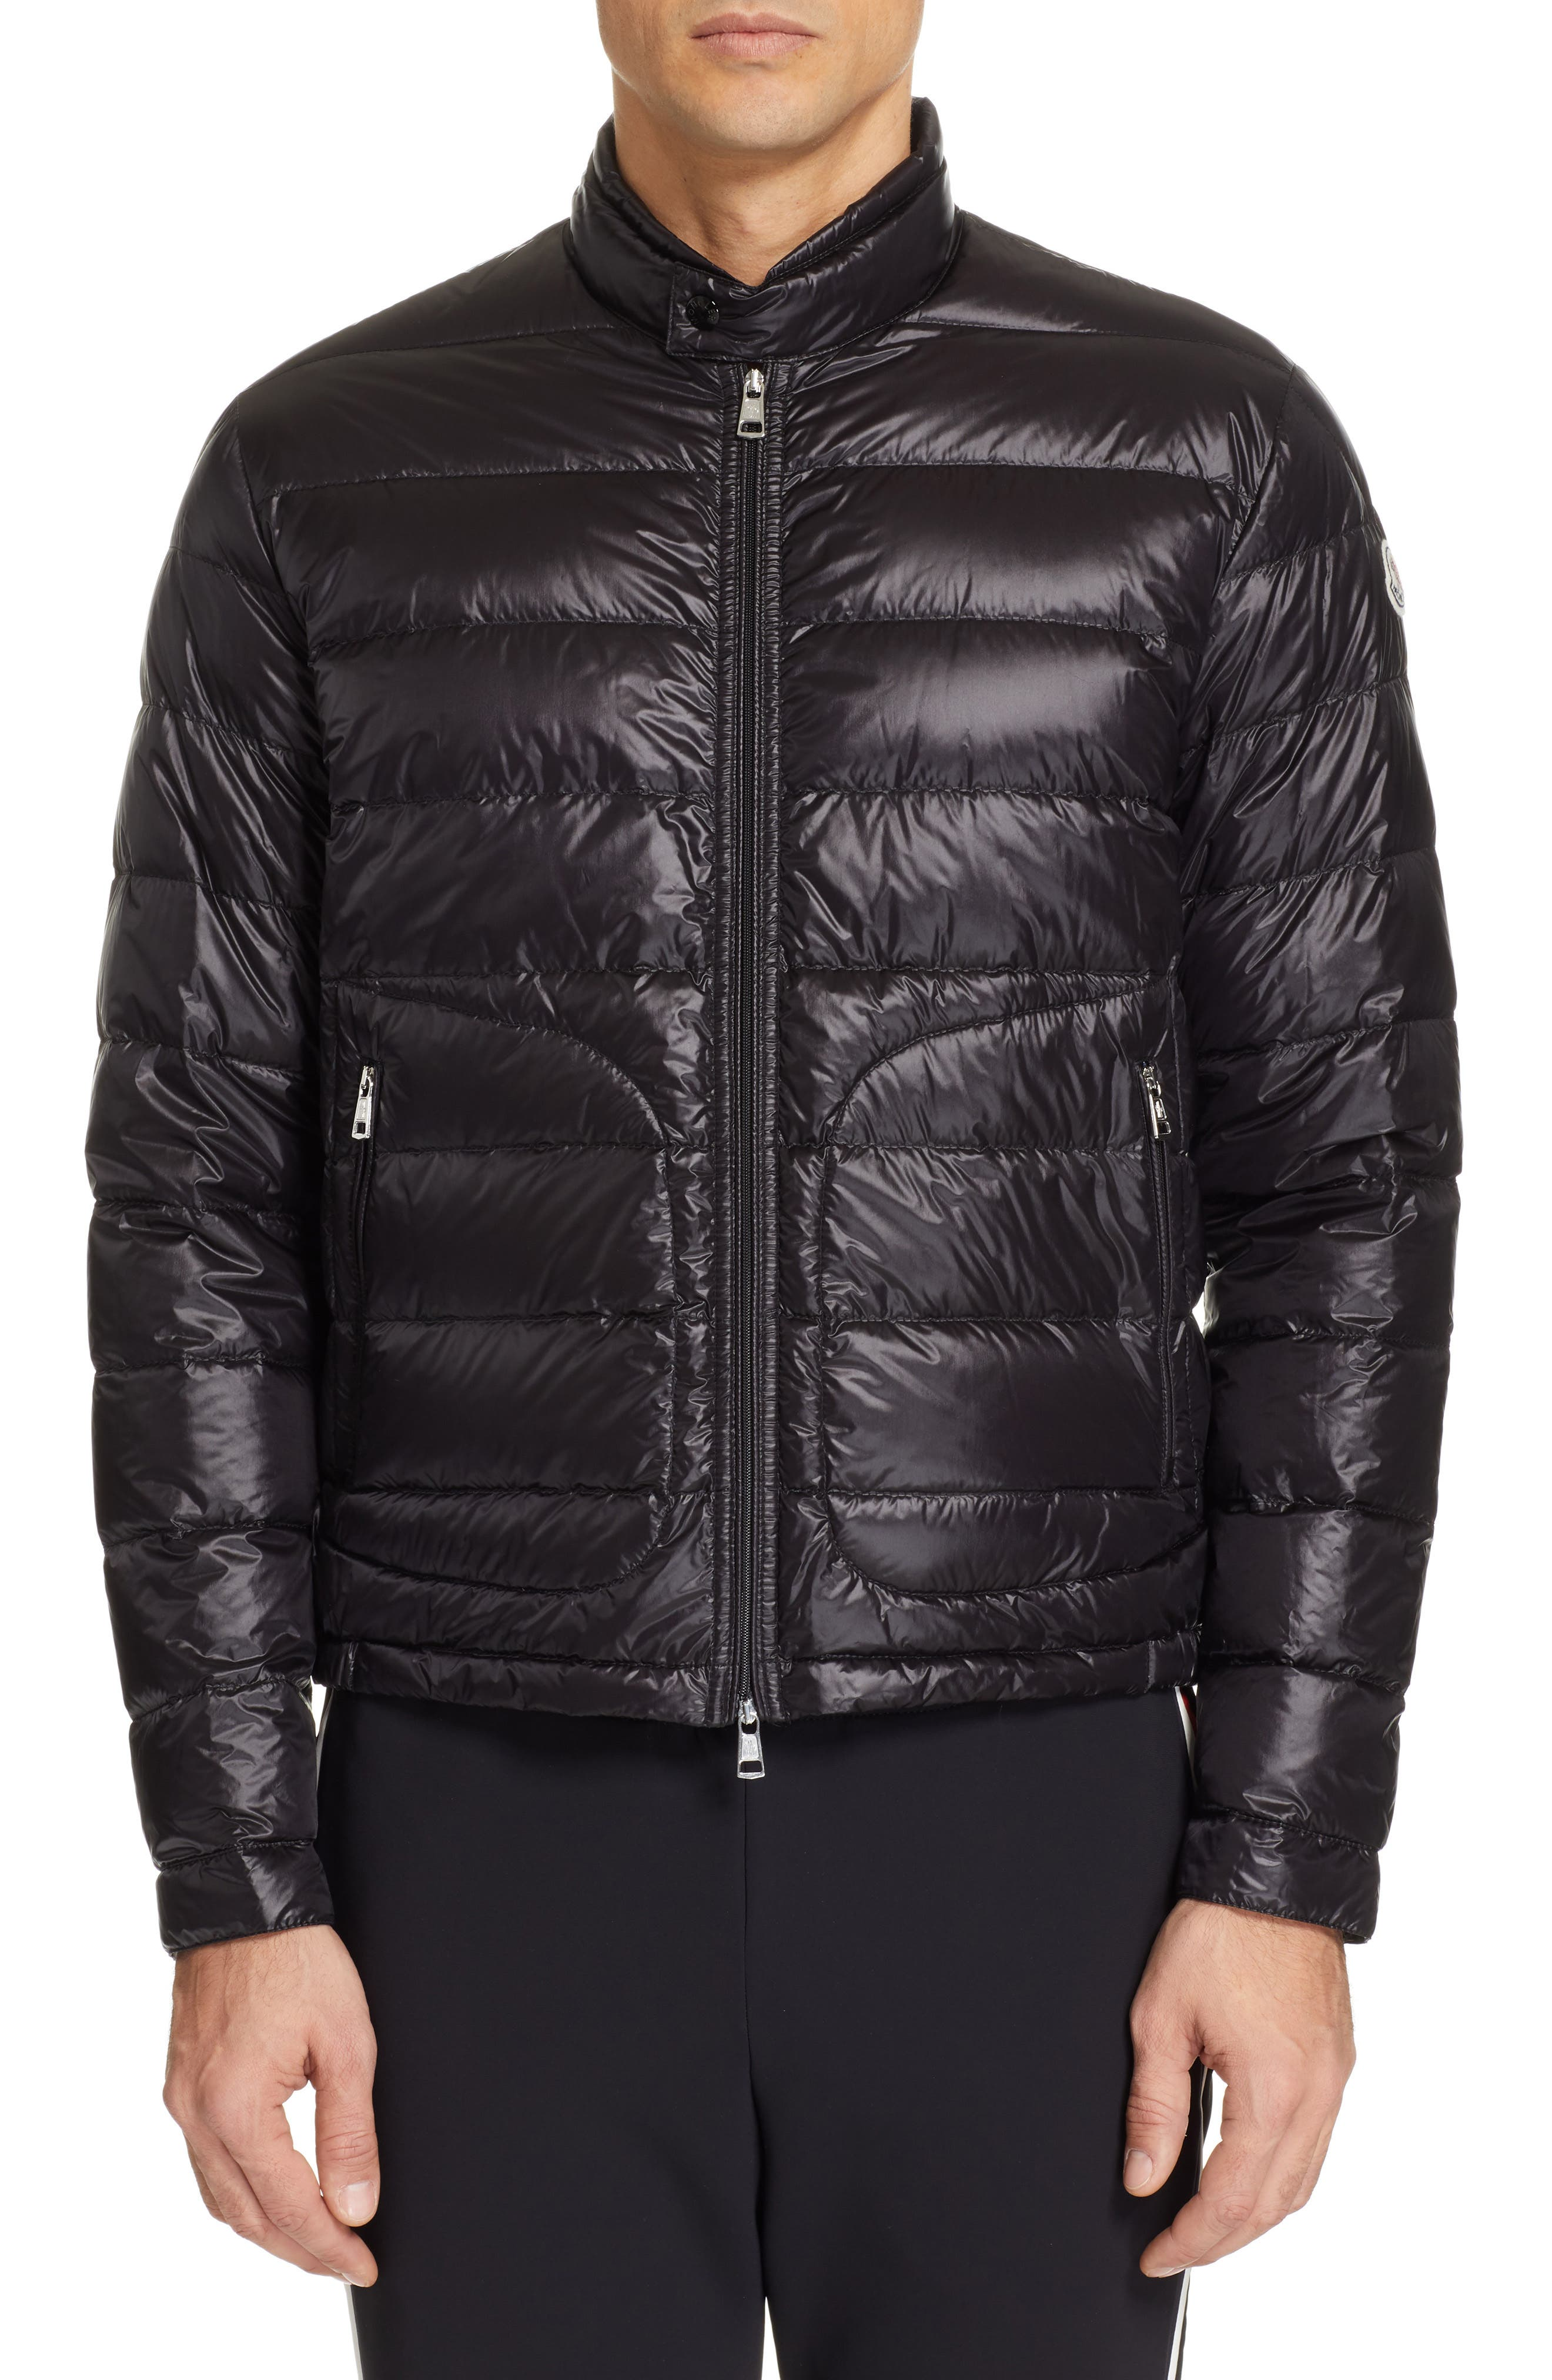 MONCLER, Acorus Down Jacket, Alternate thumbnail 4, color, BLACK